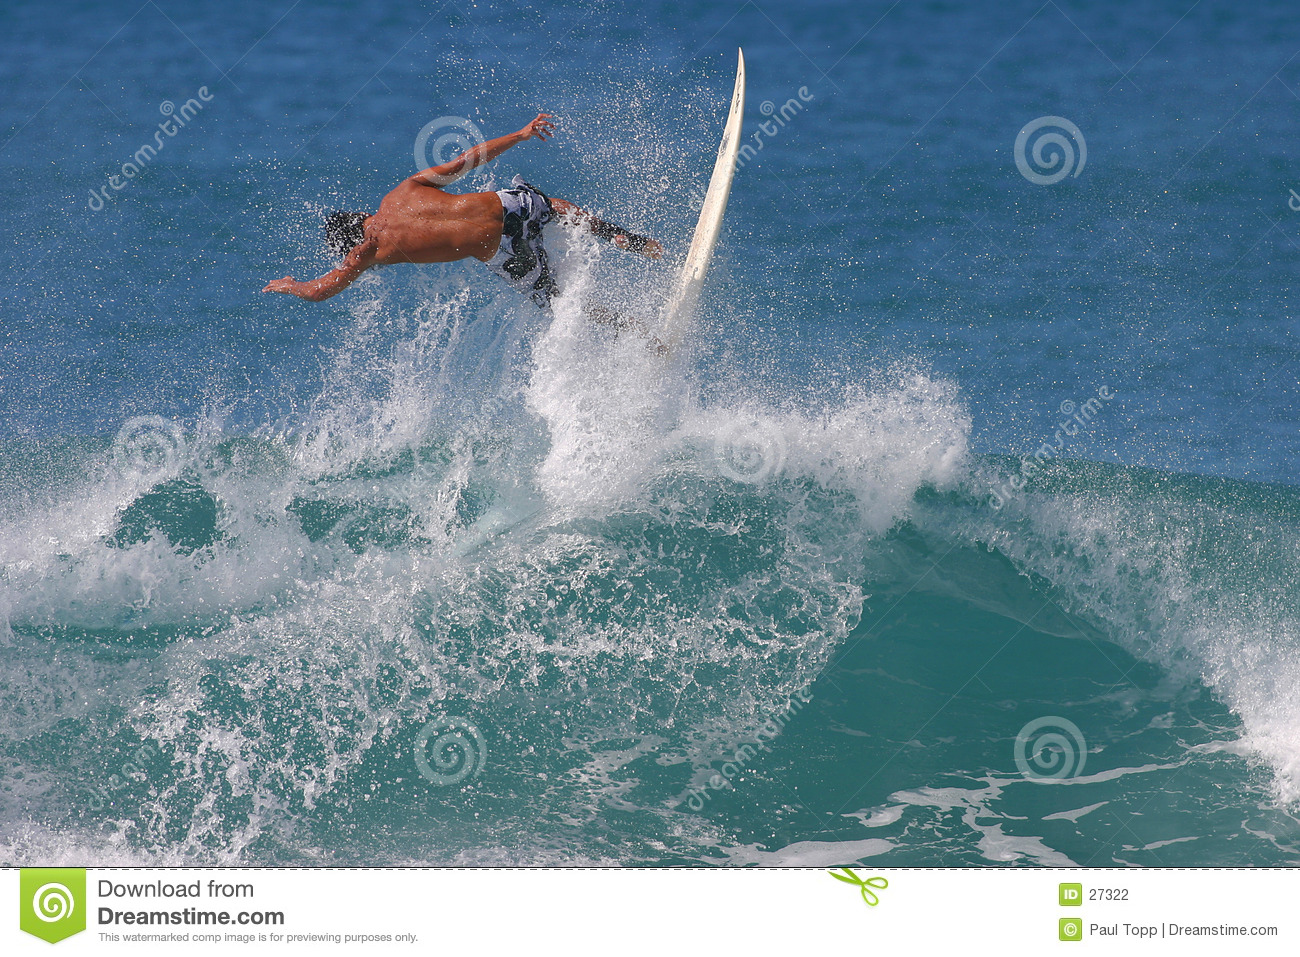 Surfer Catching Air While Surfing in Hawaii